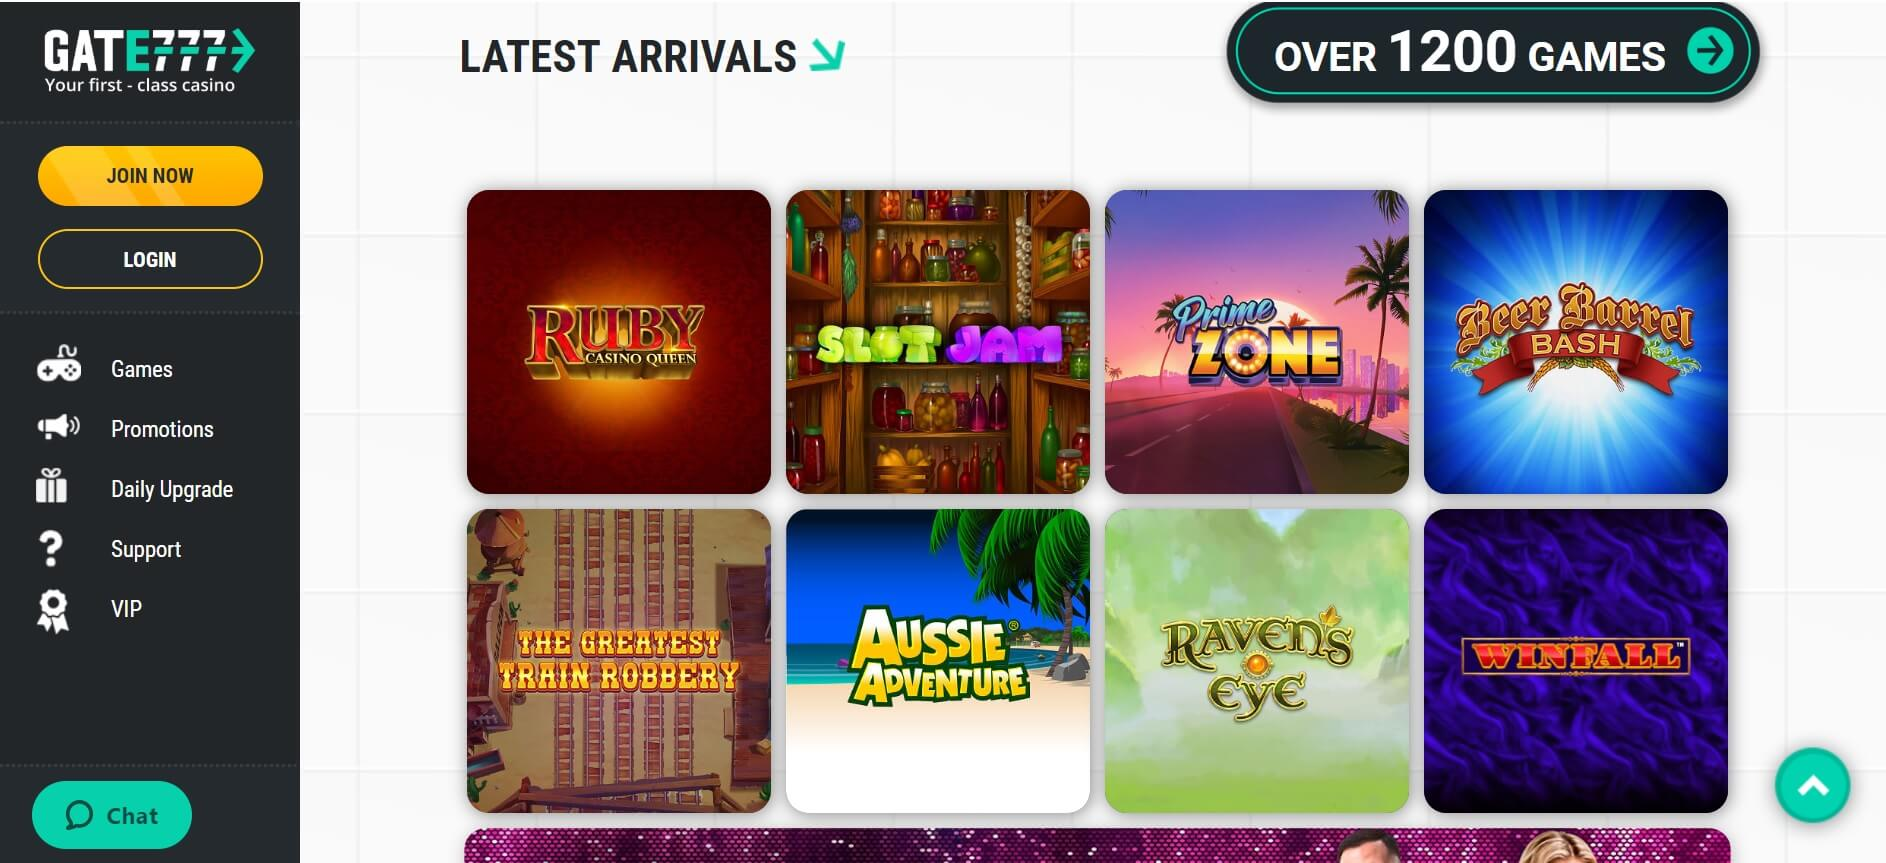 gate 777 online casino games